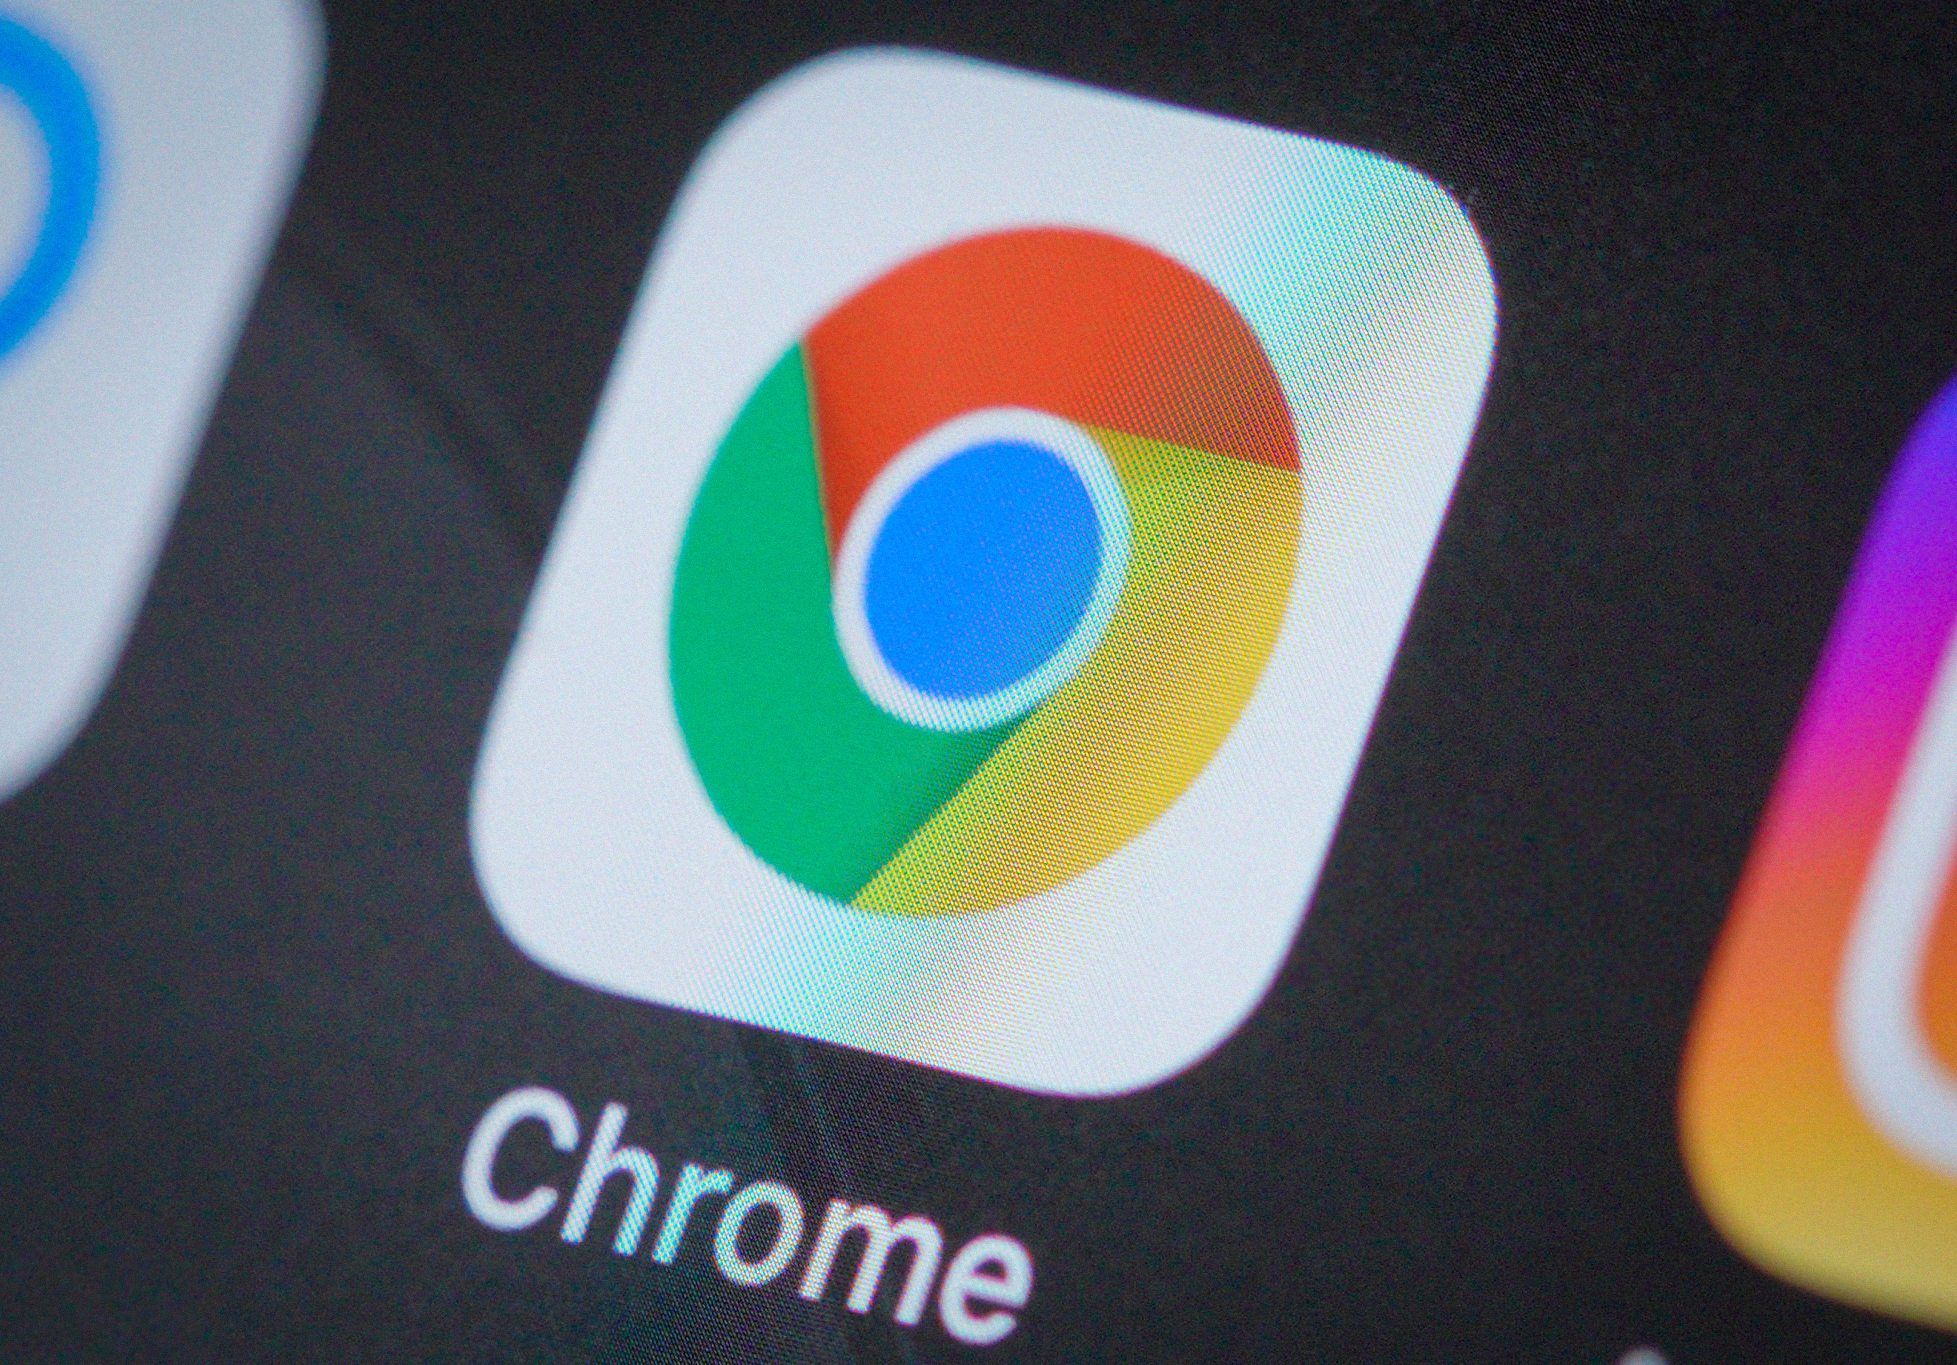 Chrome Uses Up a Shocking Amount of Memory, Here's Why